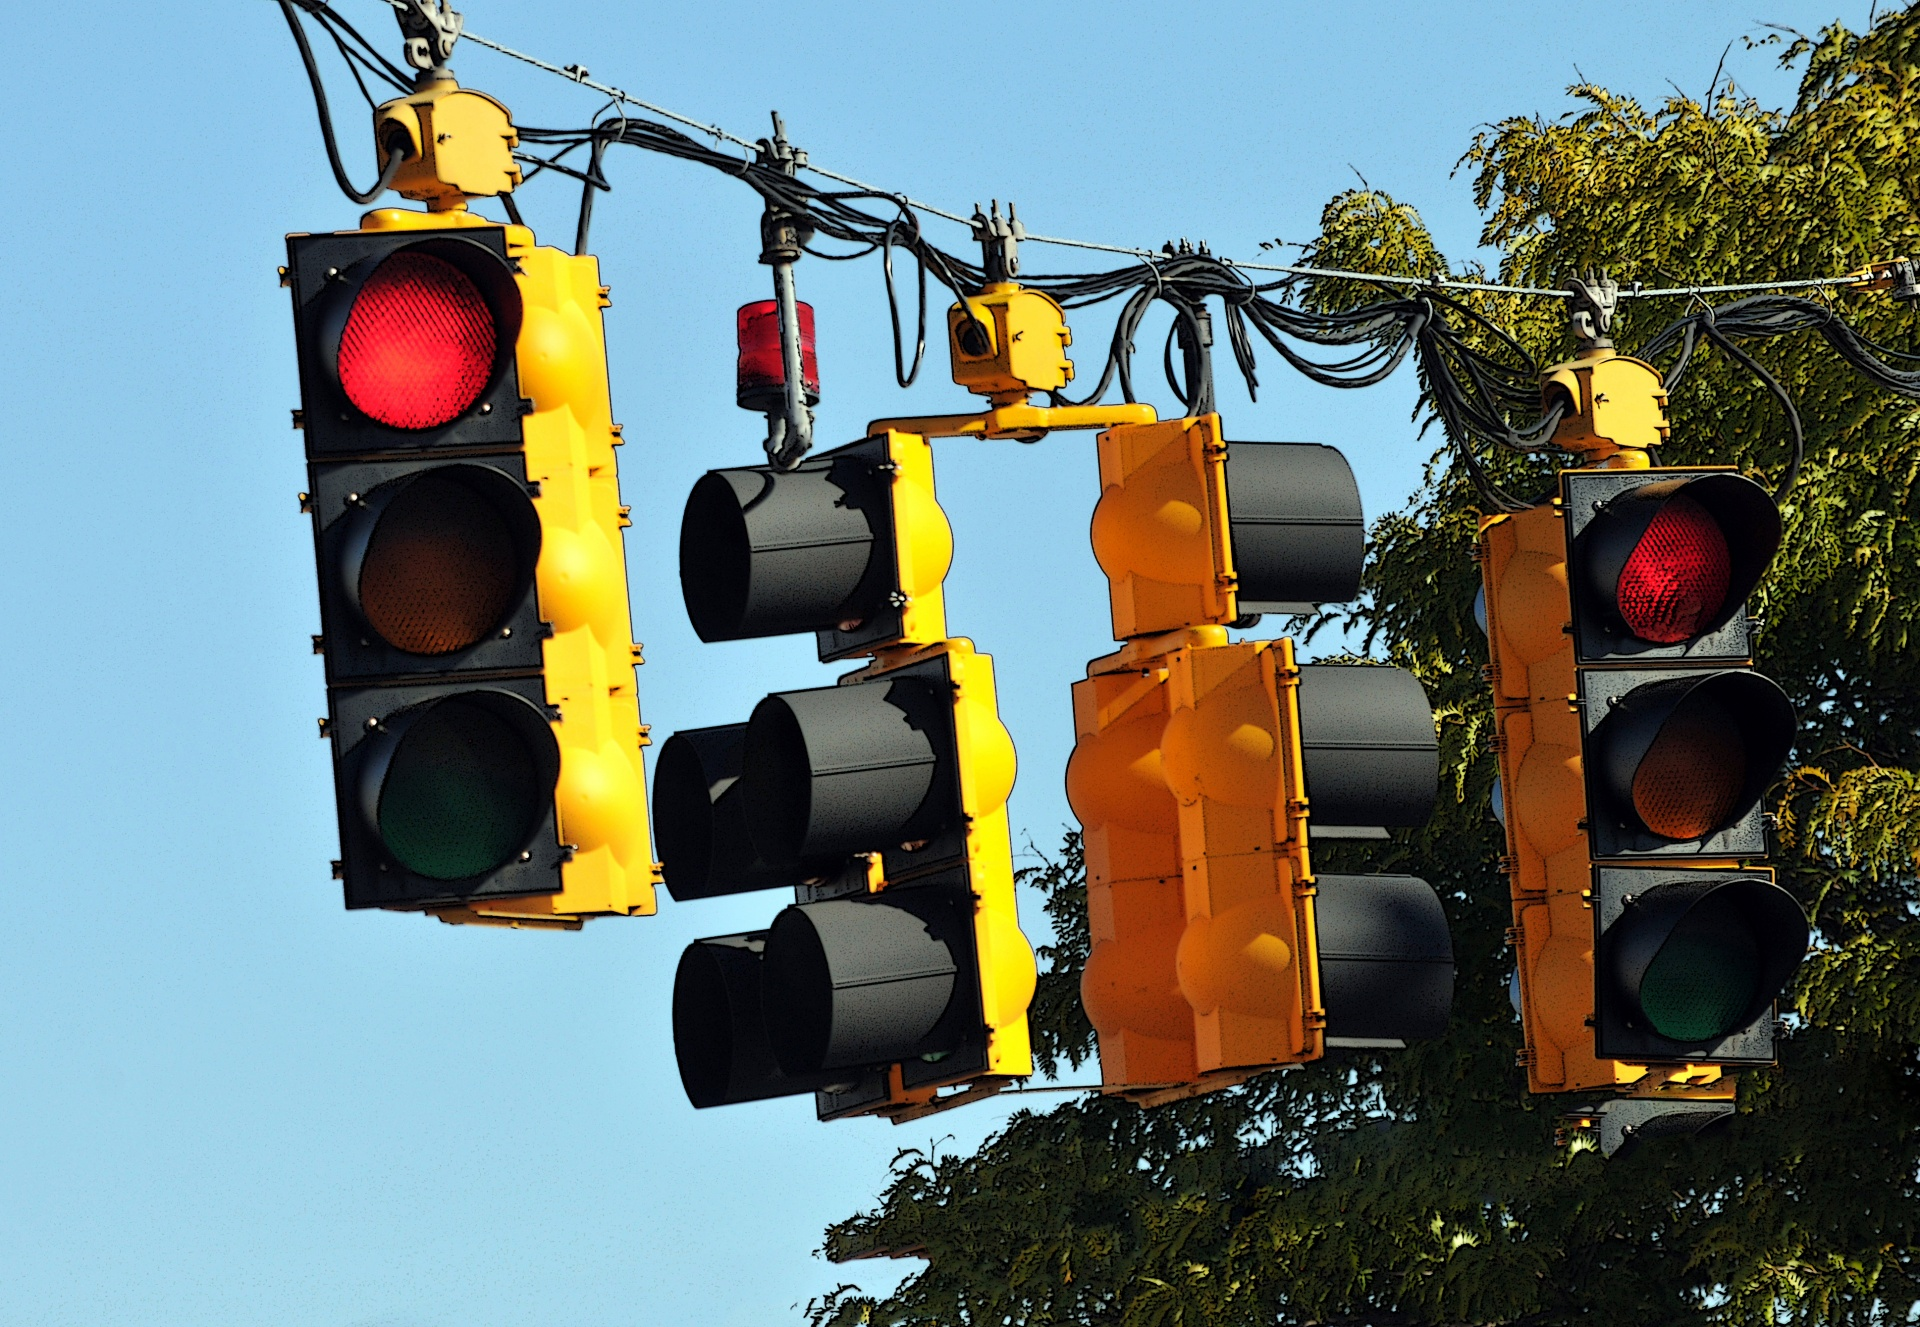 Putting A Stop To Red Light Cameras Increases Traffic Fatalities